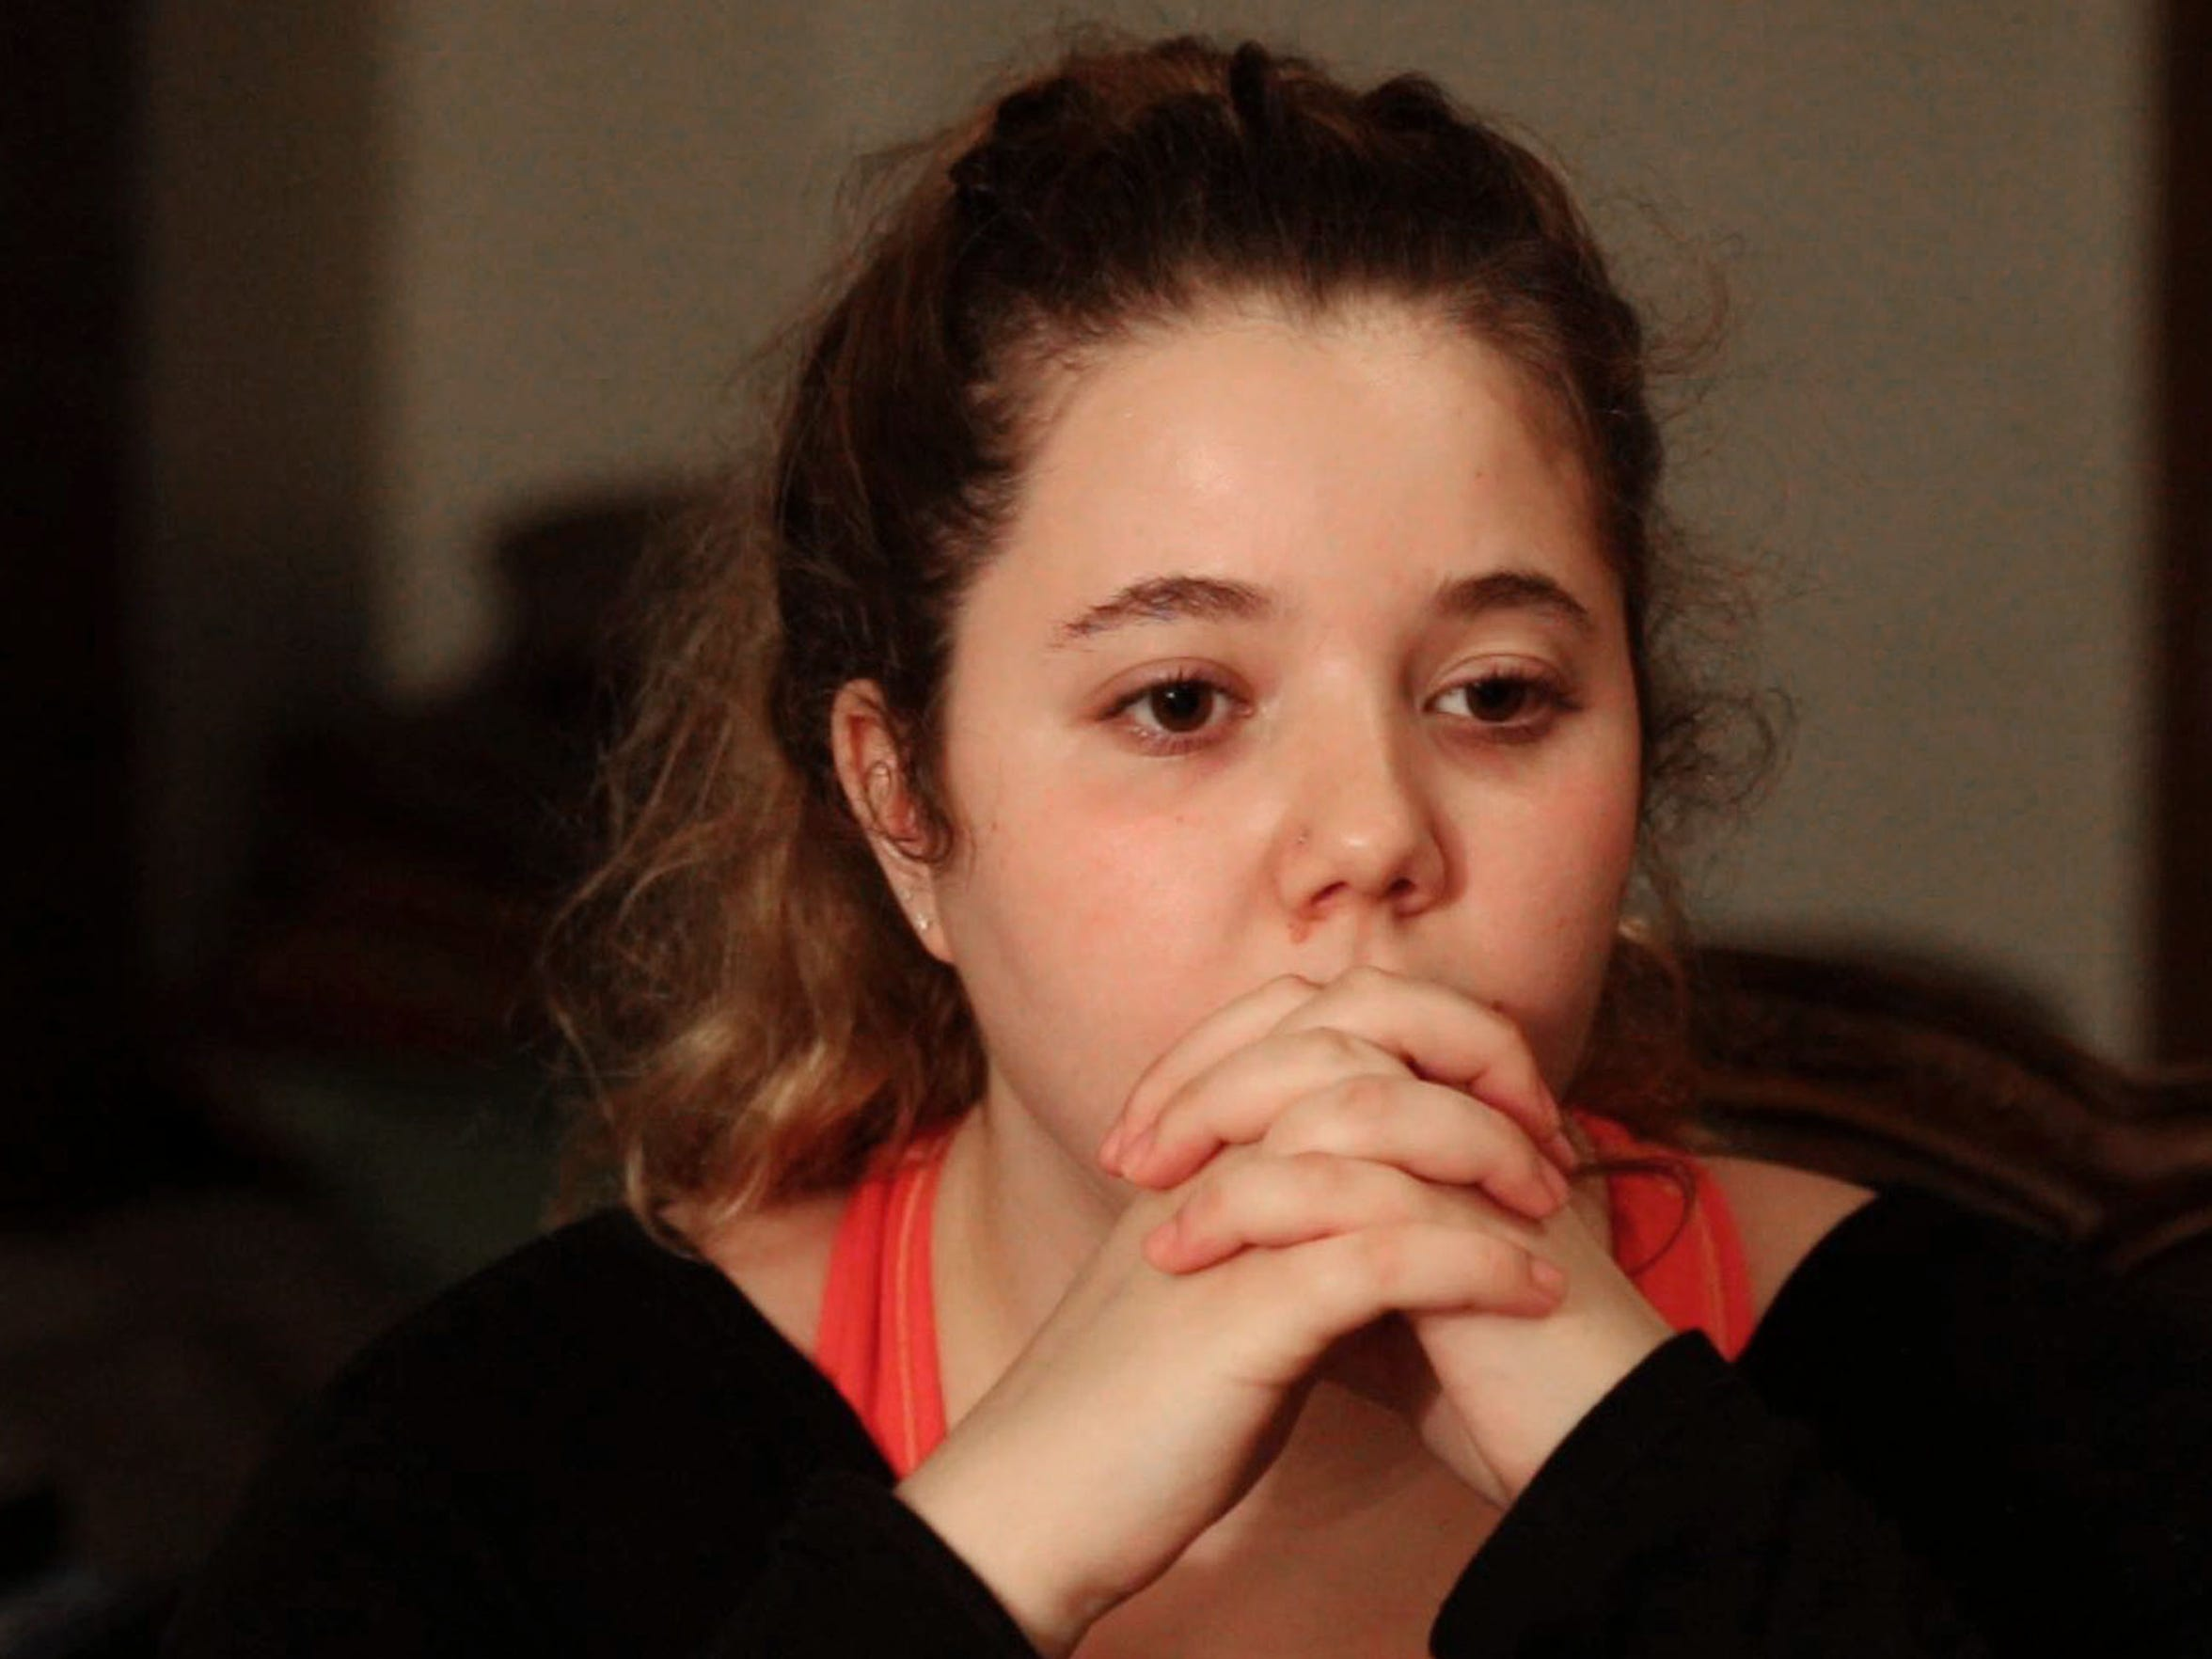 Leonard Boldman's 19-year-old daughter Carly Boldman talks about the family tragedy.